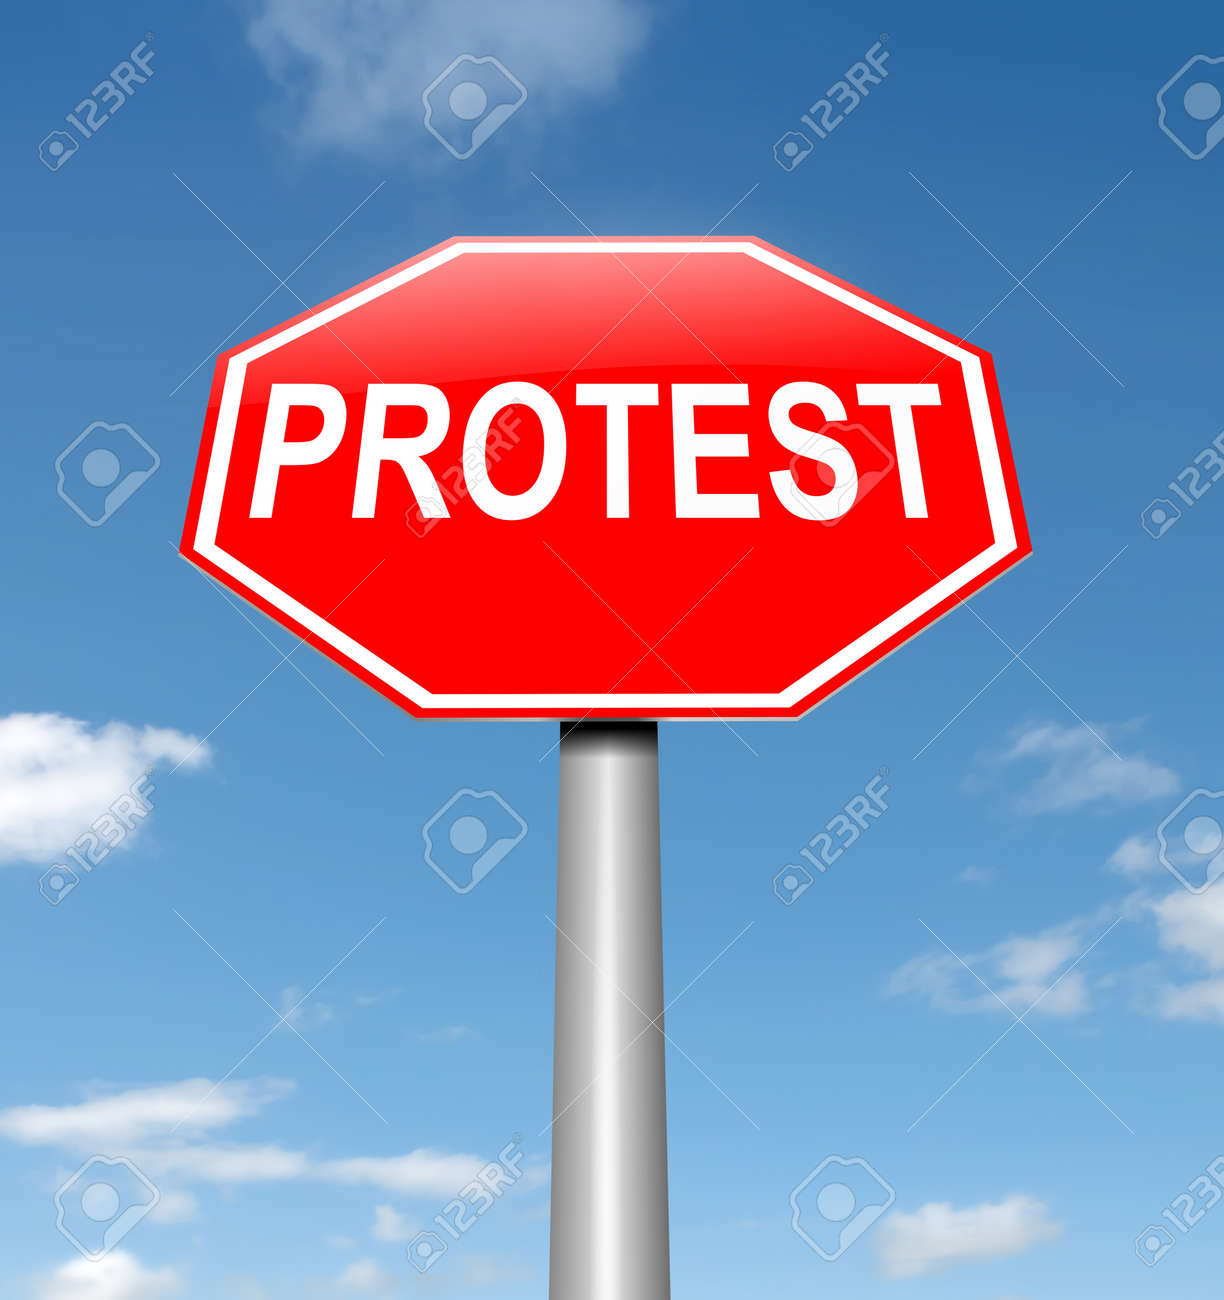 Illustration depicting a roadsign with a protest concept. Sky background. Stock Photo - 15219495